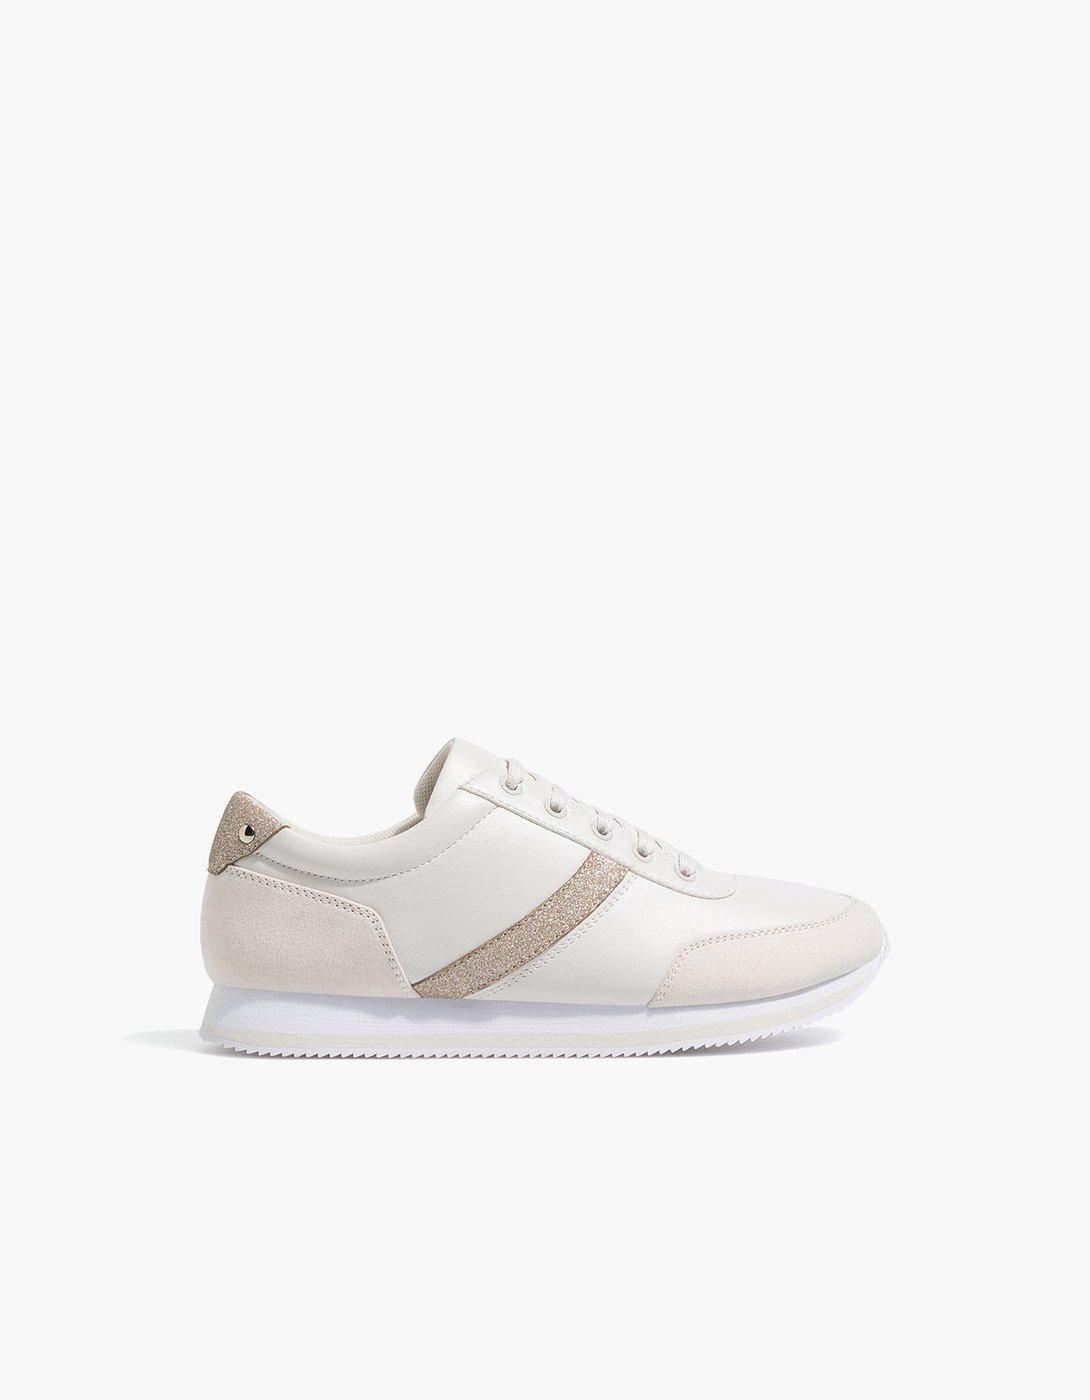 online retailer f790d bf8f9 At Stradivarius youll find 1 Sneakers with contrasting nude details for  just 3290 Serbia . Visit now to discover this and more All.REF.  2896341-V2018